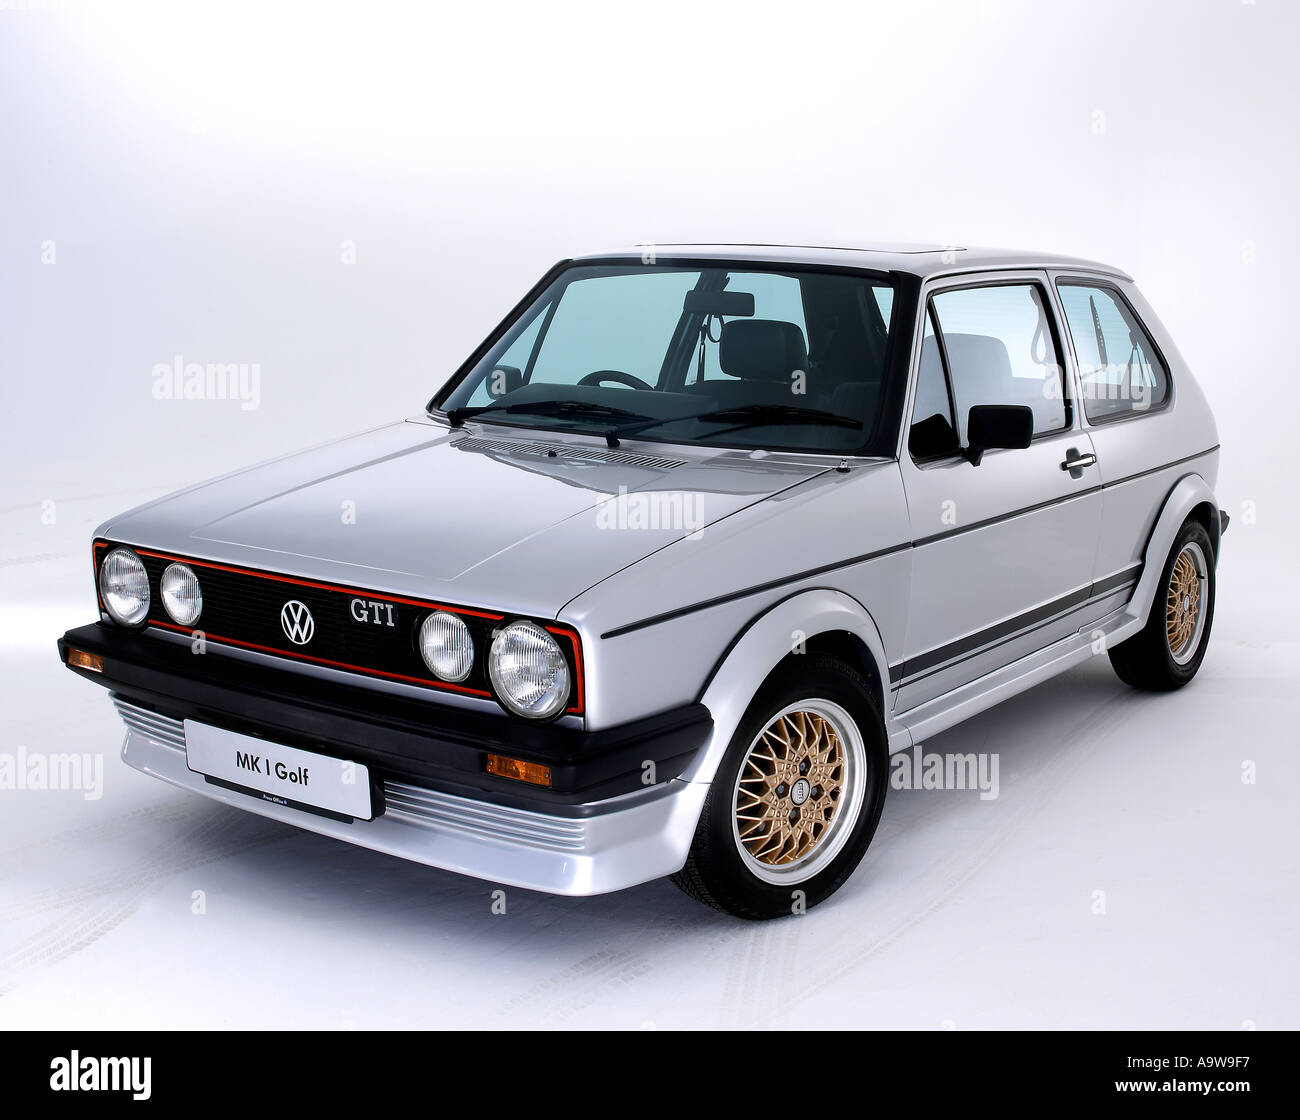 1984 vw golf gti mk1 stock photo royalty free image. Black Bedroom Furniture Sets. Home Design Ideas